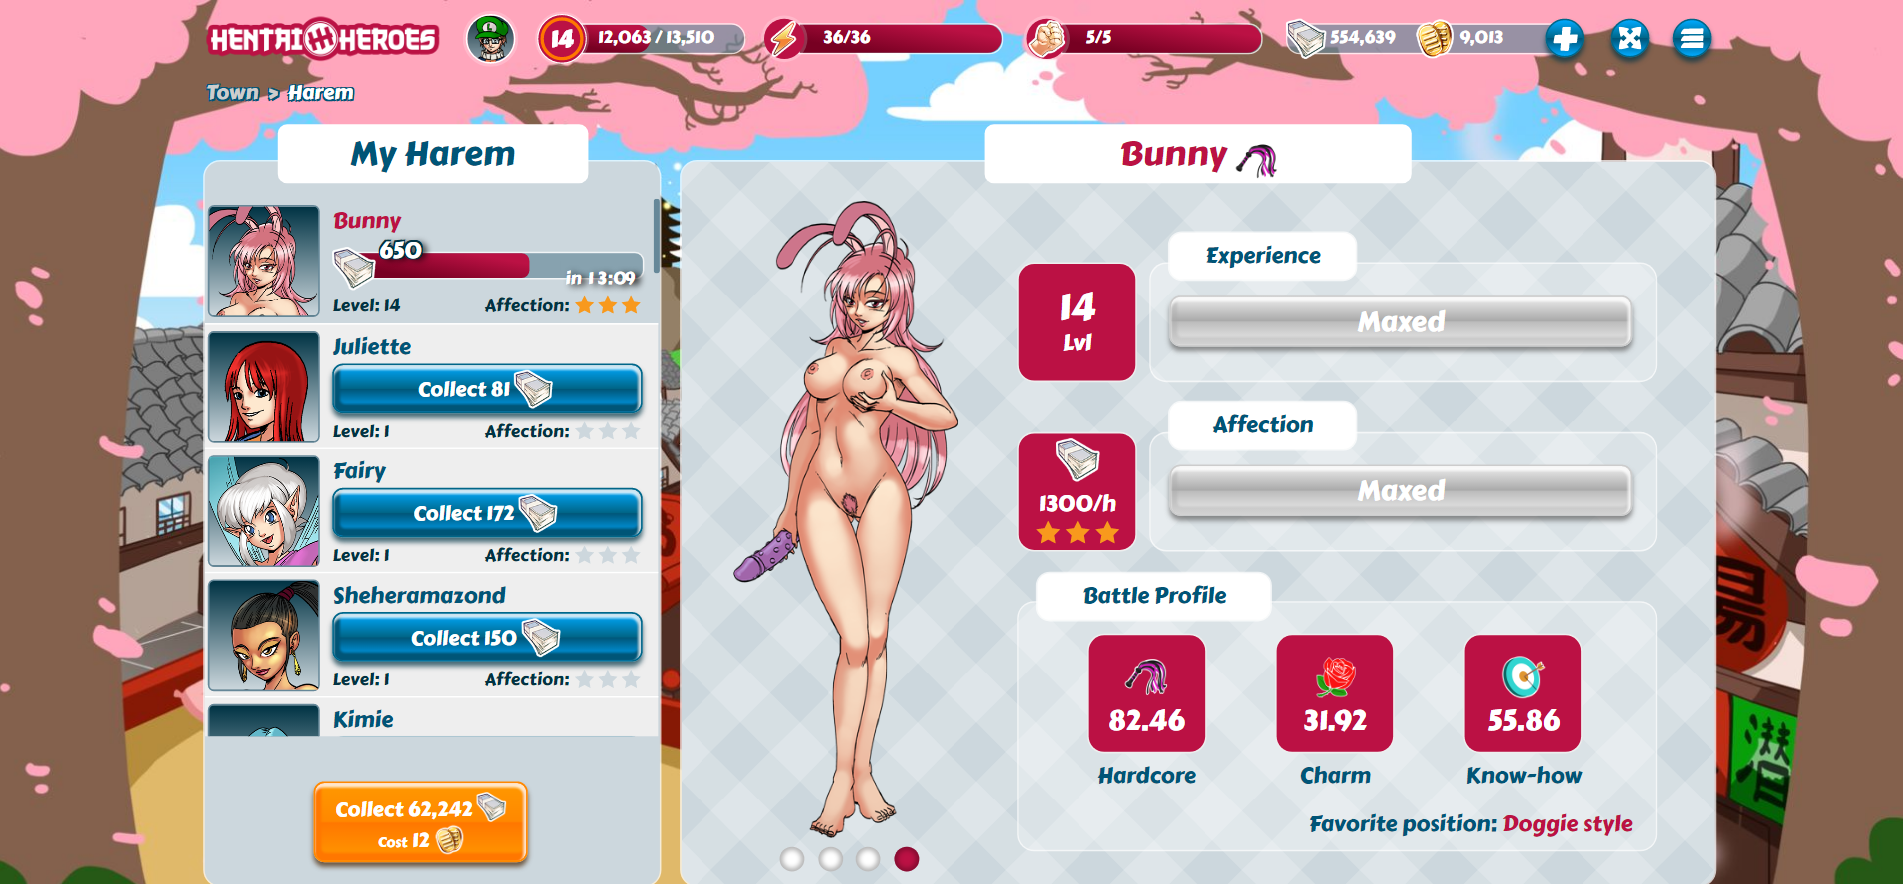 Hentai Arcade Games for hentai heroes game review